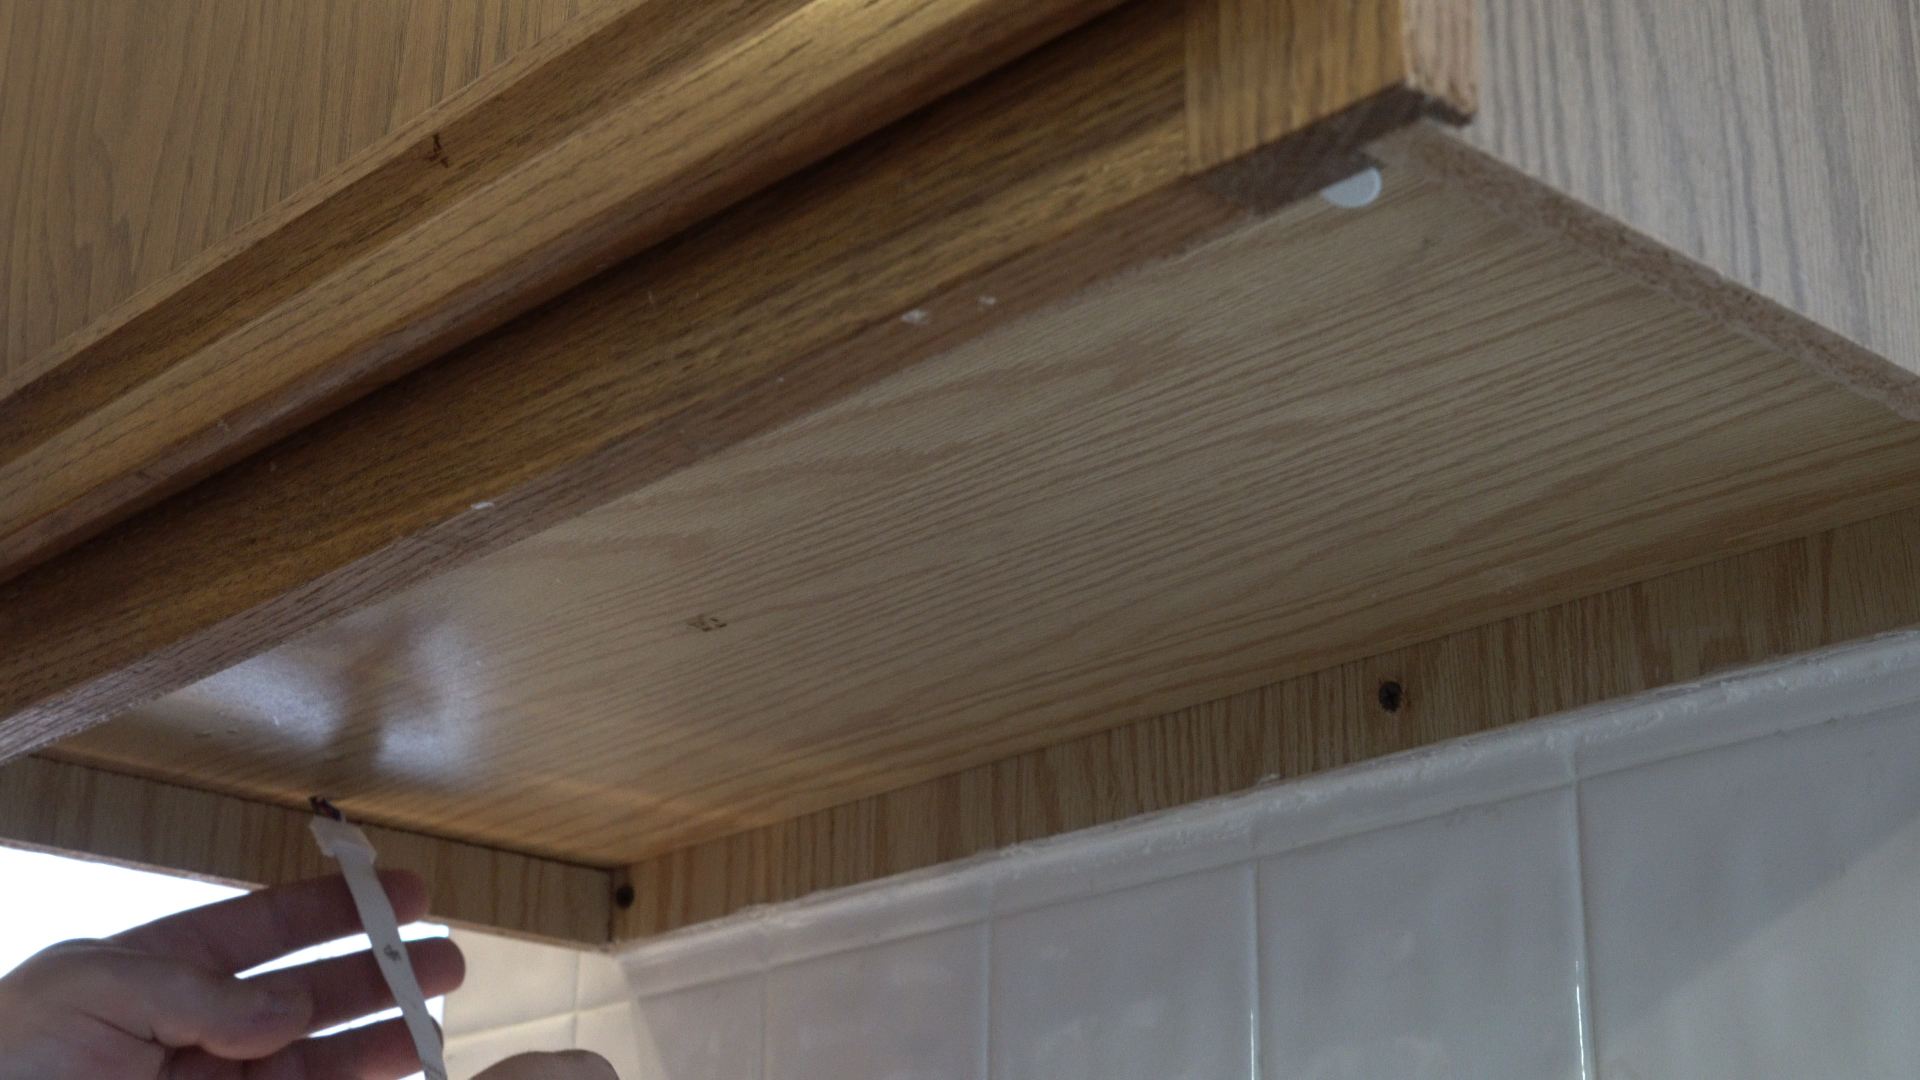 Above-Cabinet and Under-Cabinet LED Lighting: How to Install LED Strip Lights - step 28-1